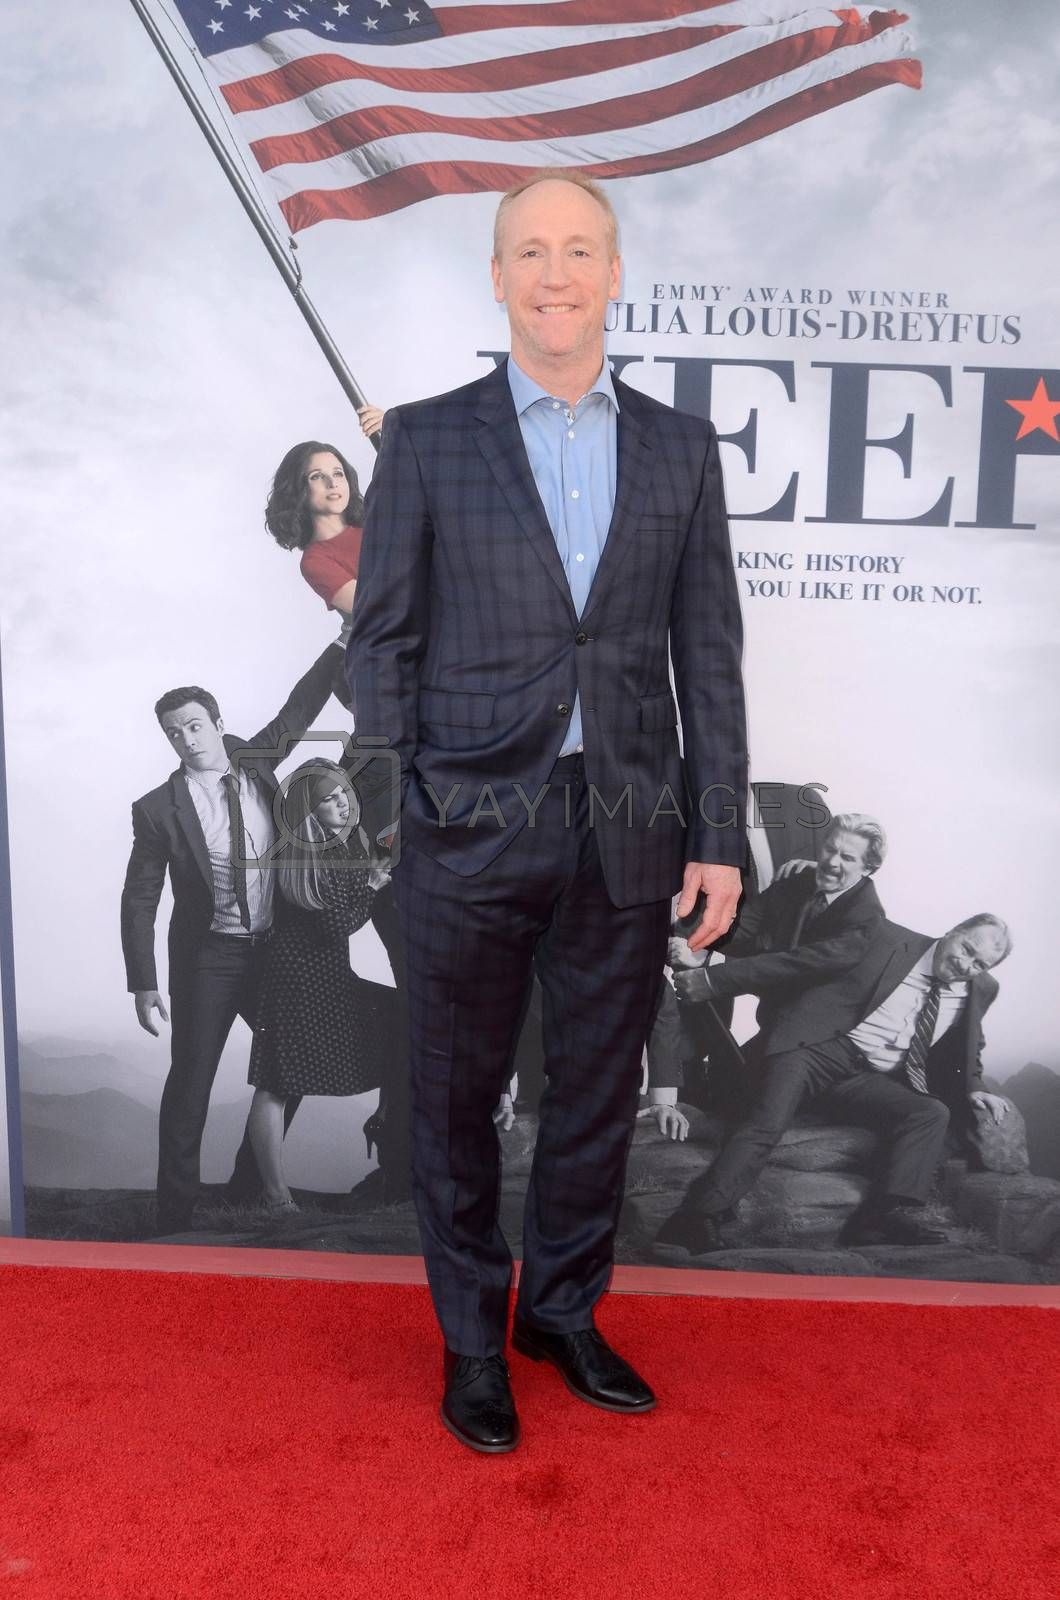 Matt Walsh at FYC for HBO's series VEEP 6th Season, Television Academy, North Hollywood, CA 05-25-17/ImageCollect by ImageCollect